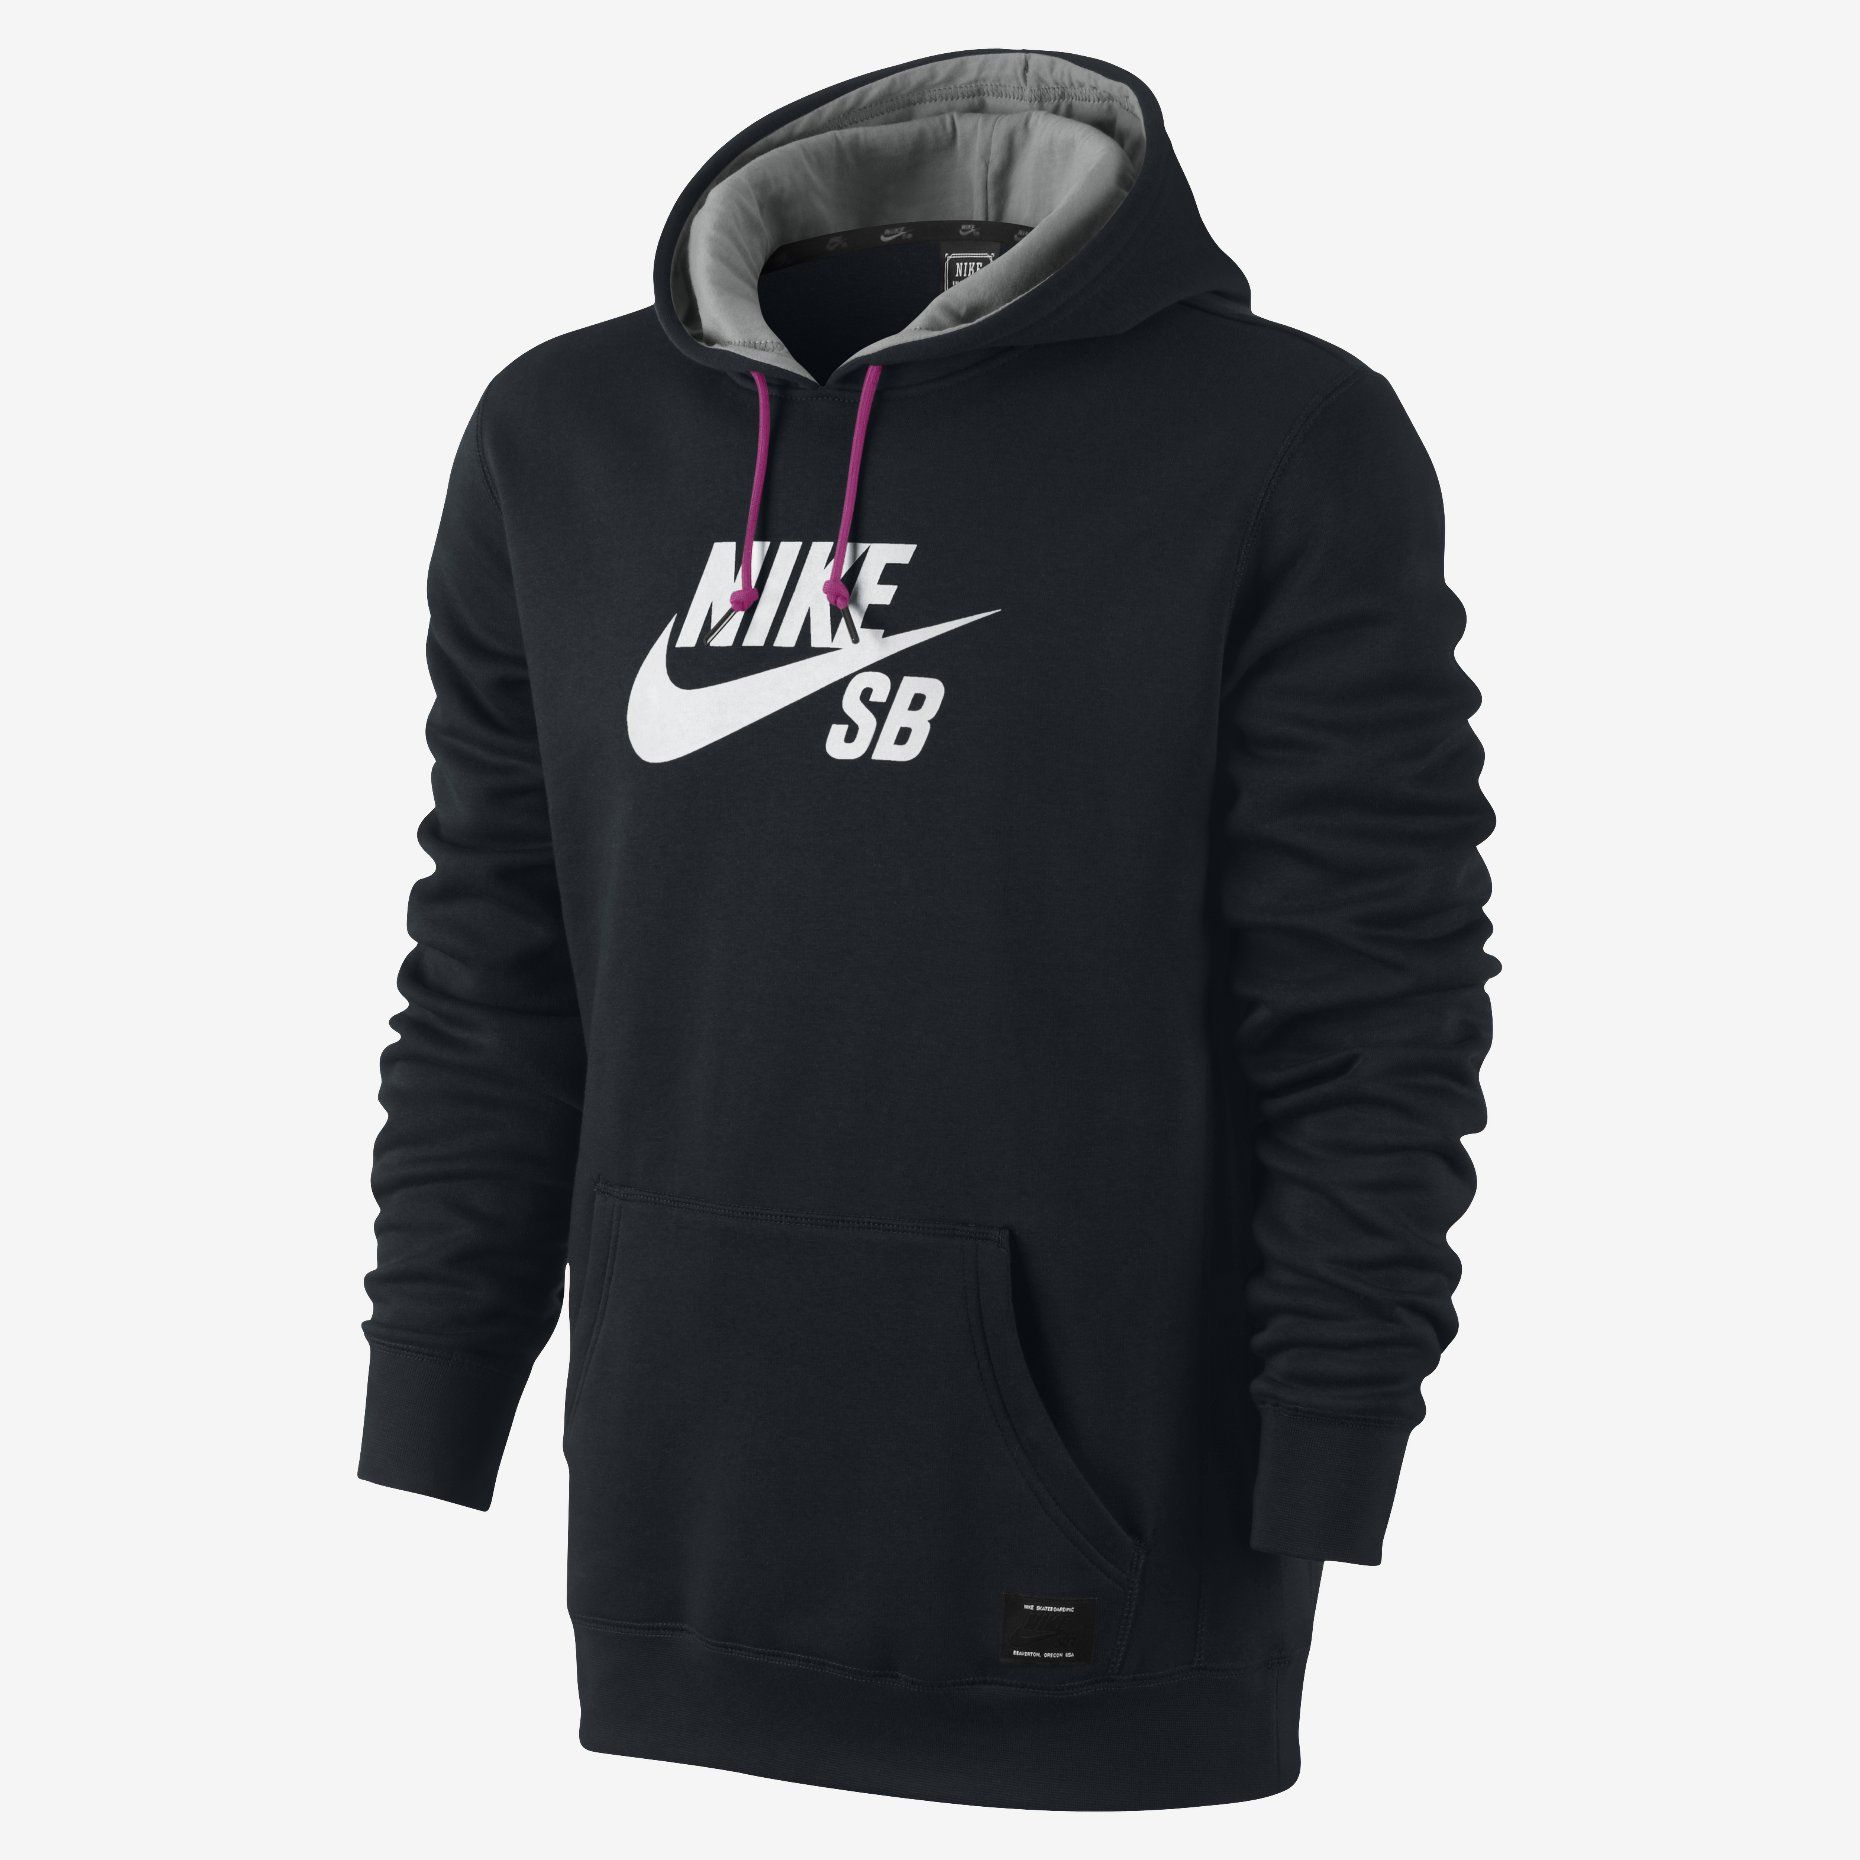 Predownload: Look What I Found At Nike Online Hoodies Men Pullover Hoodies Pullover Hoodie [ 1860 x 1860 Pixel ]